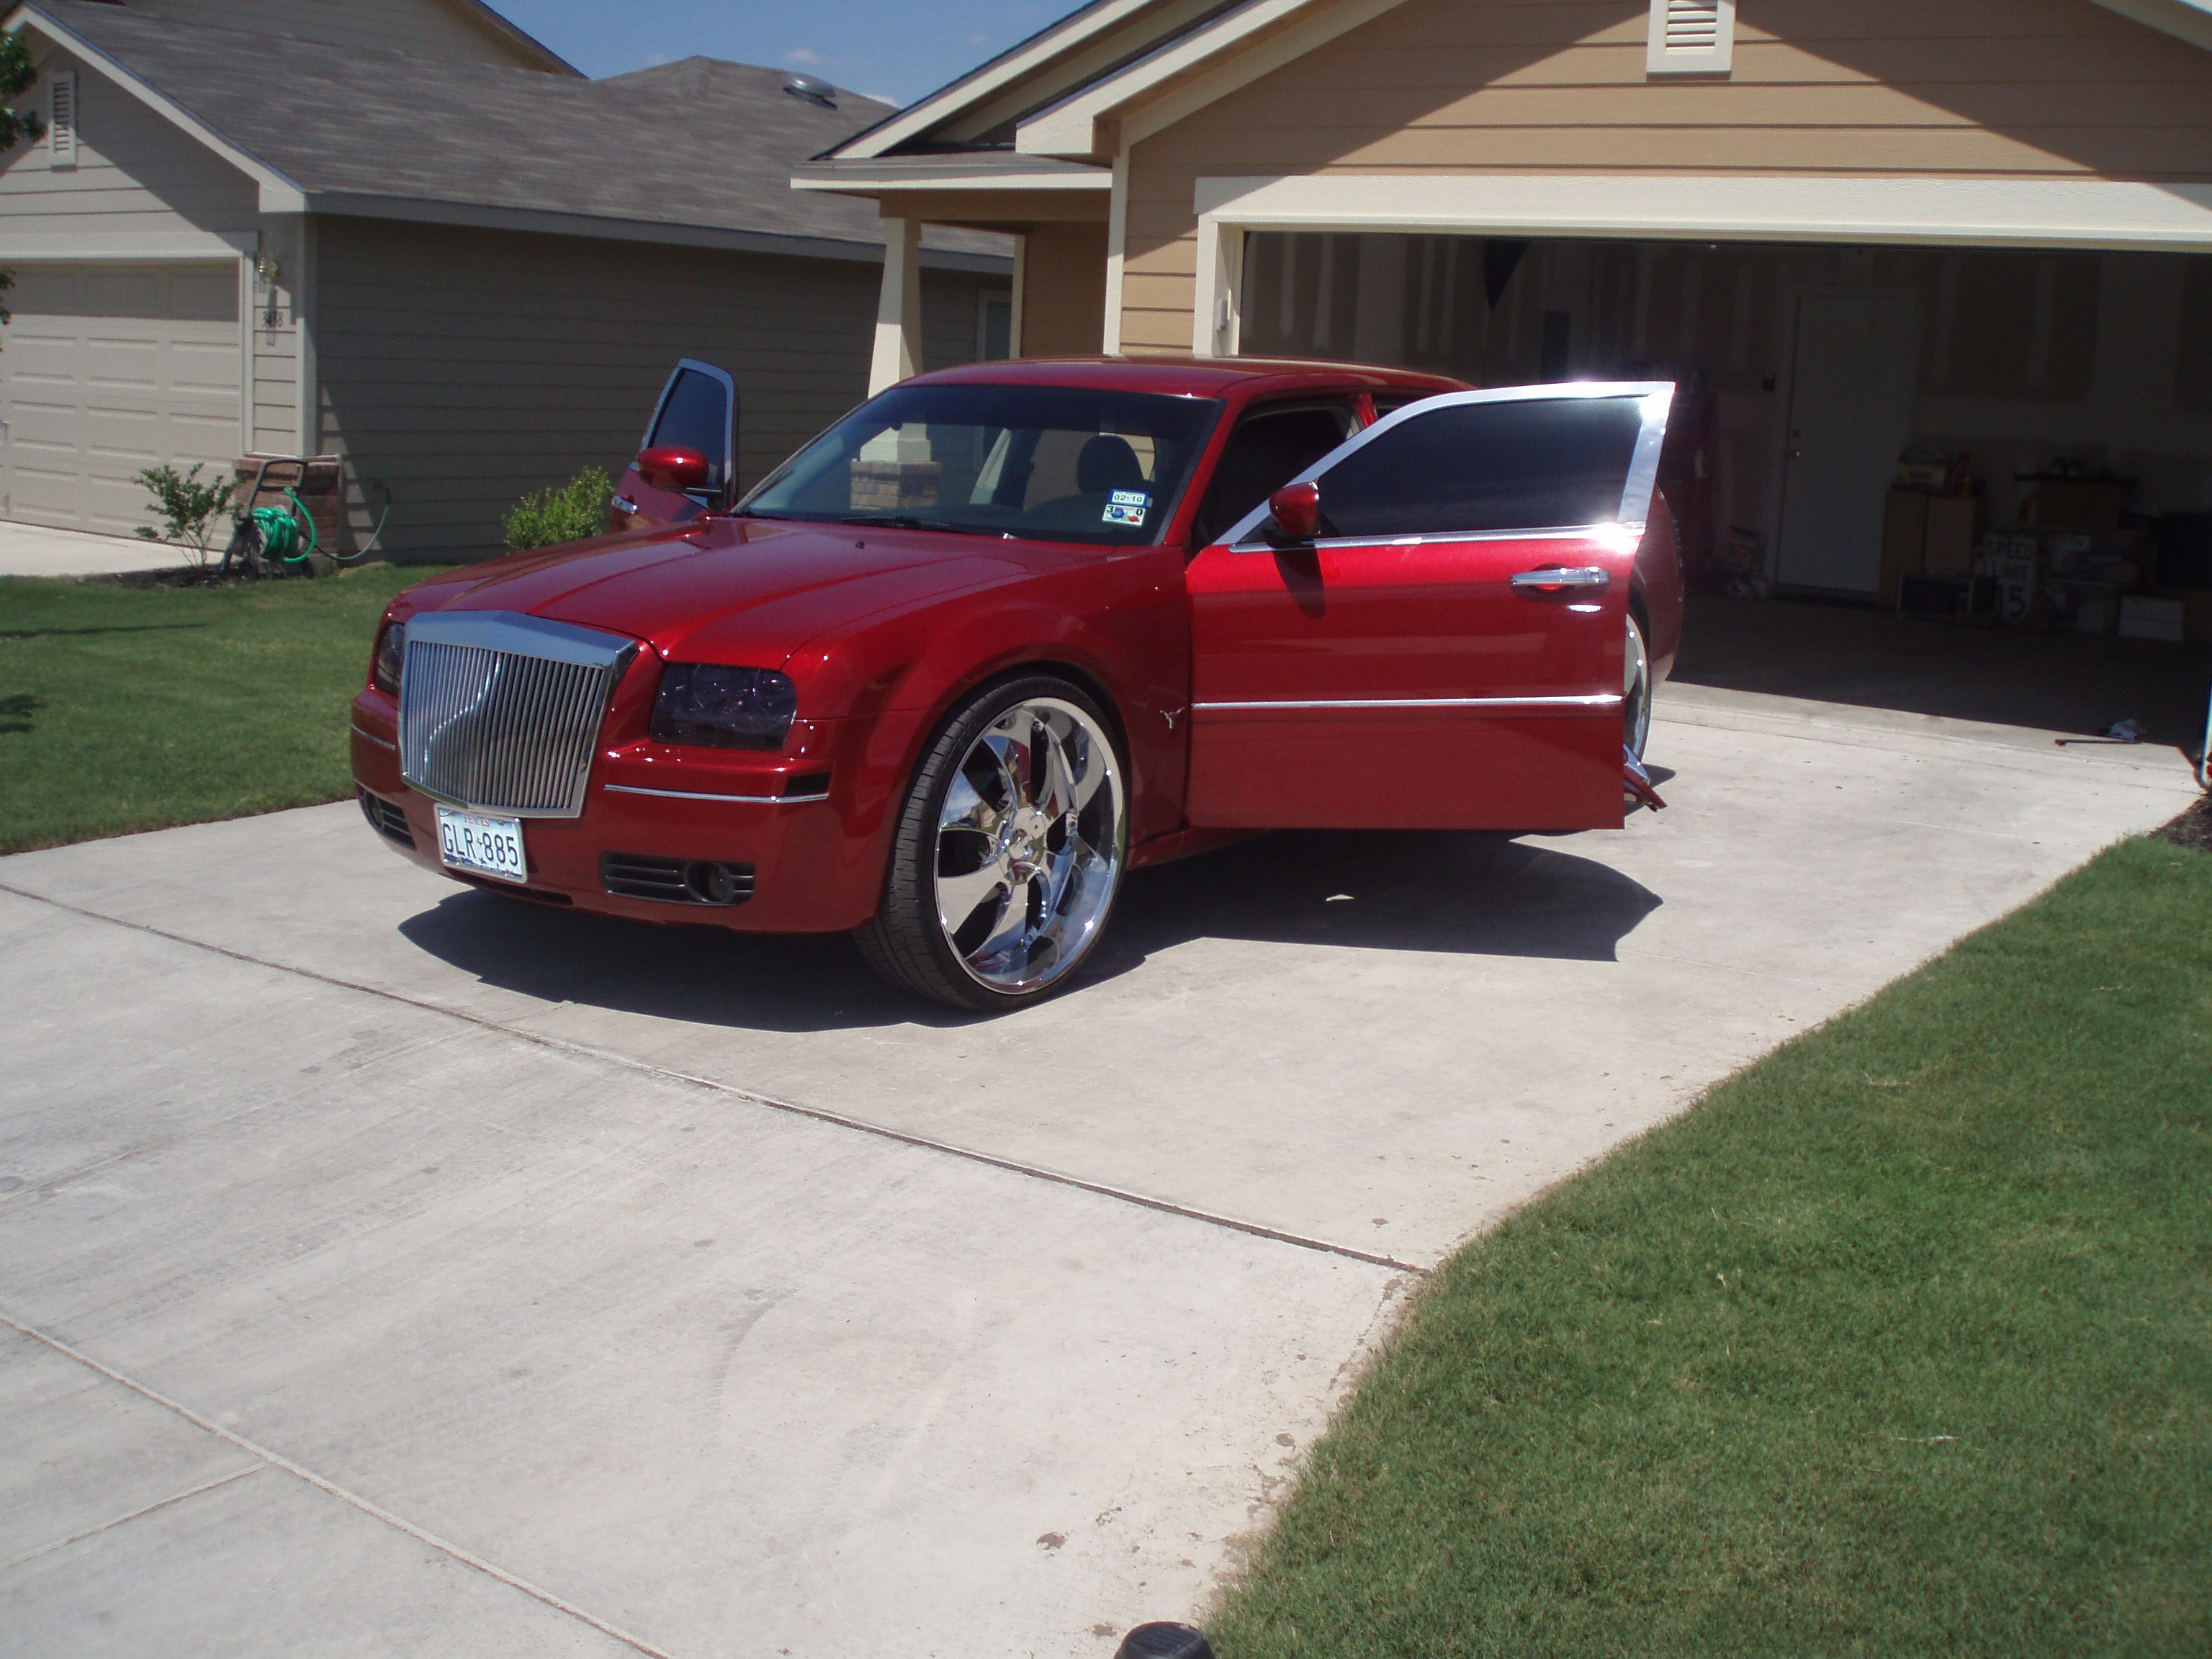 jerome2 39 s 2007 chrysler 300 in killeen tx. Black Bedroom Furniture Sets. Home Design Ideas